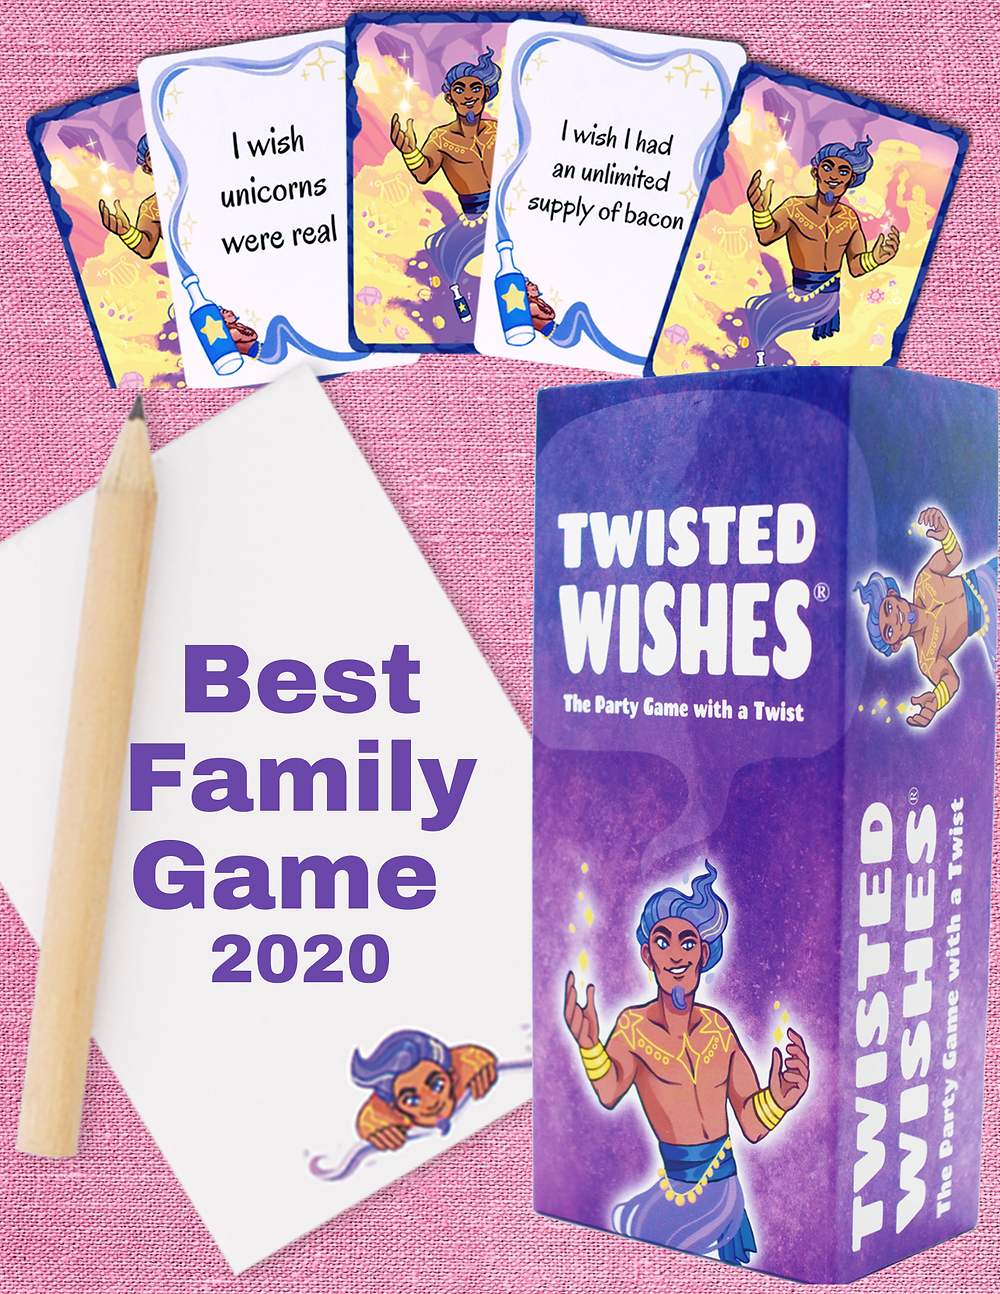 Twisted wishes family game